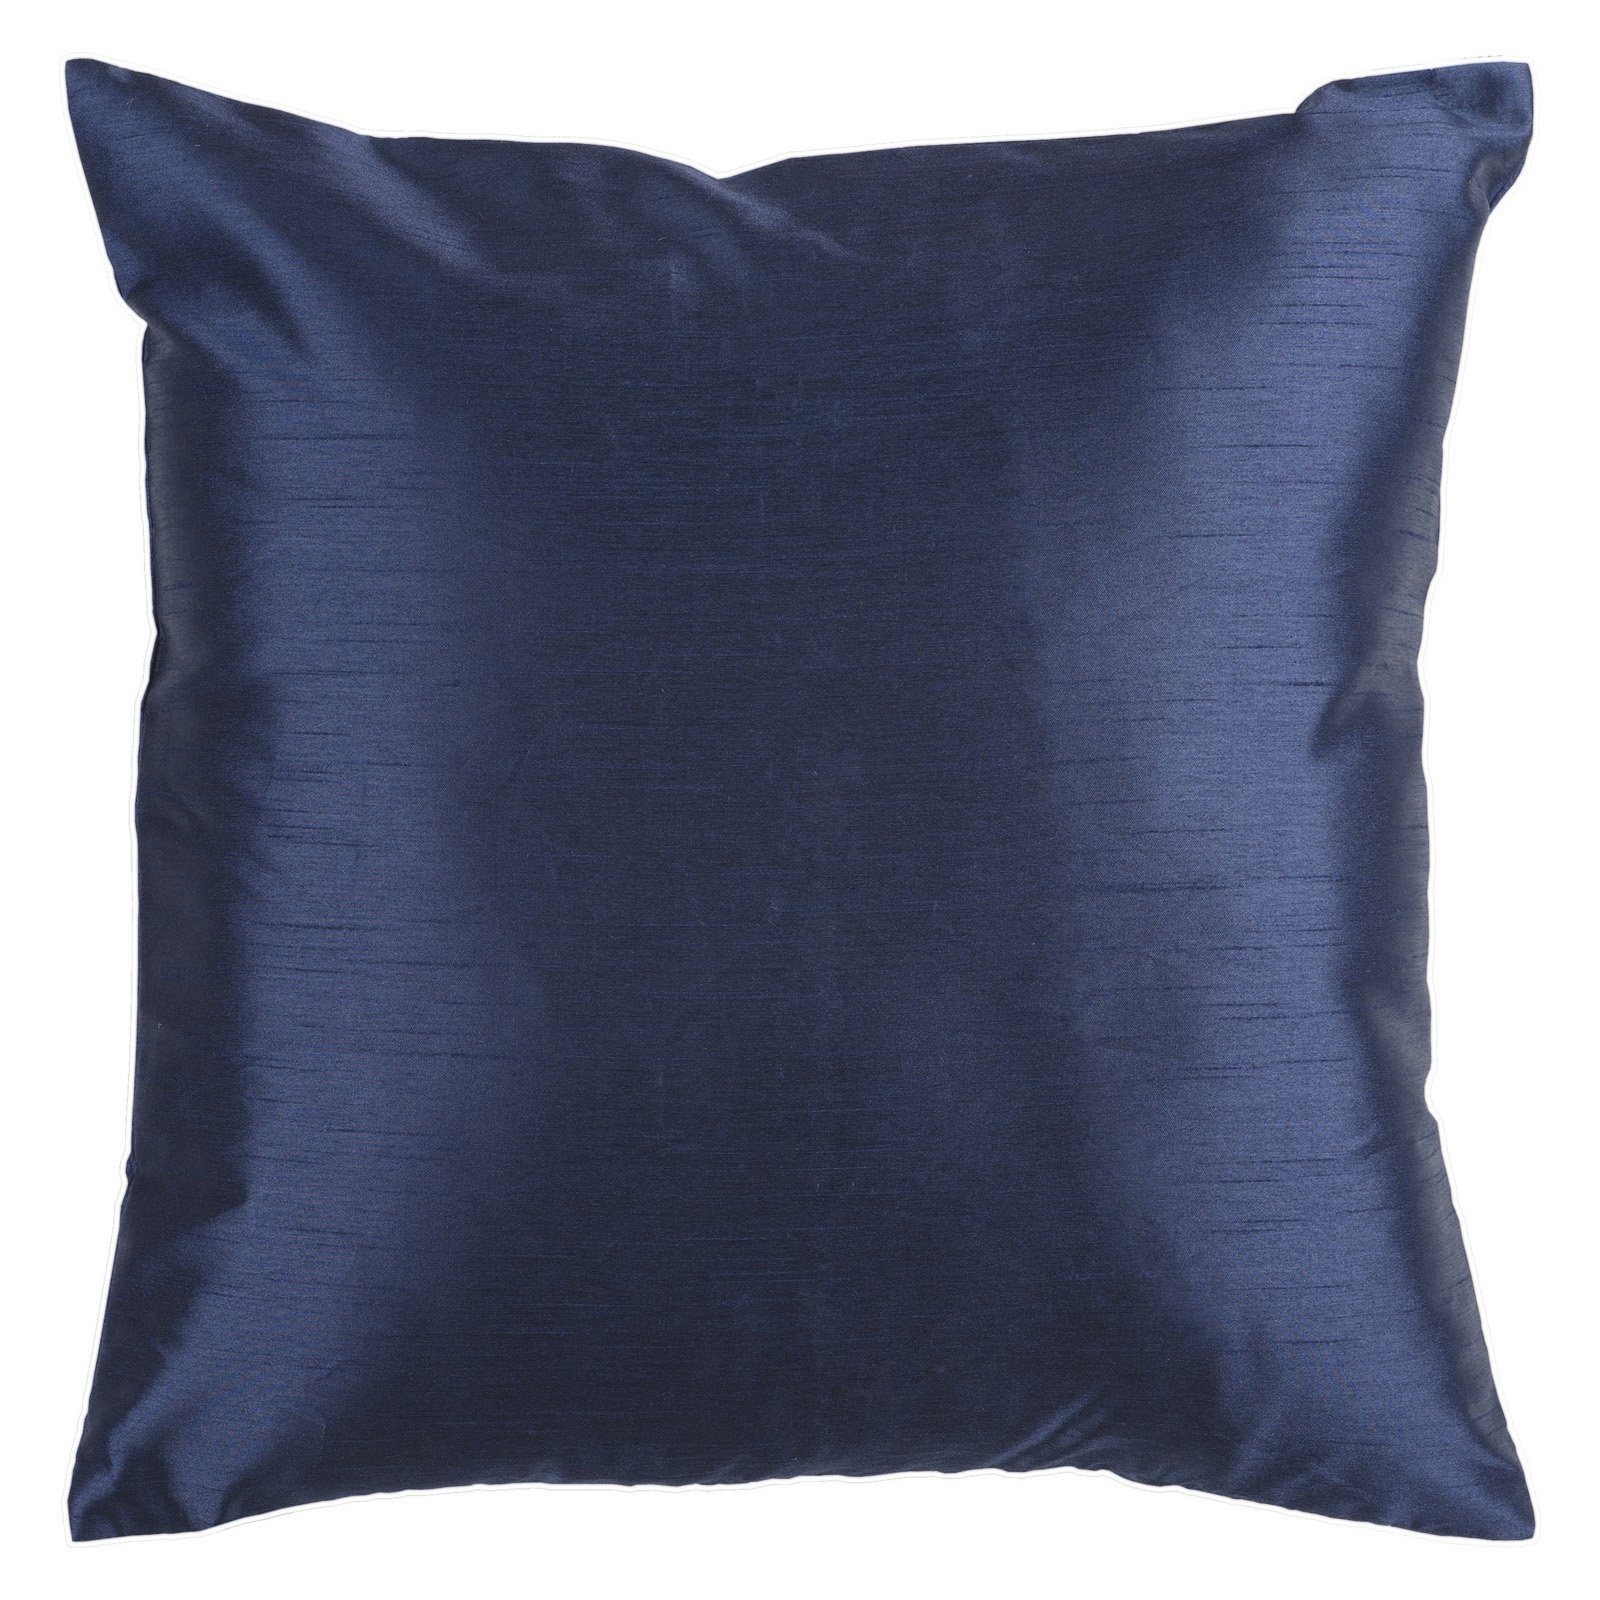 Surya Silk Lane Decorative Pillow - Navy